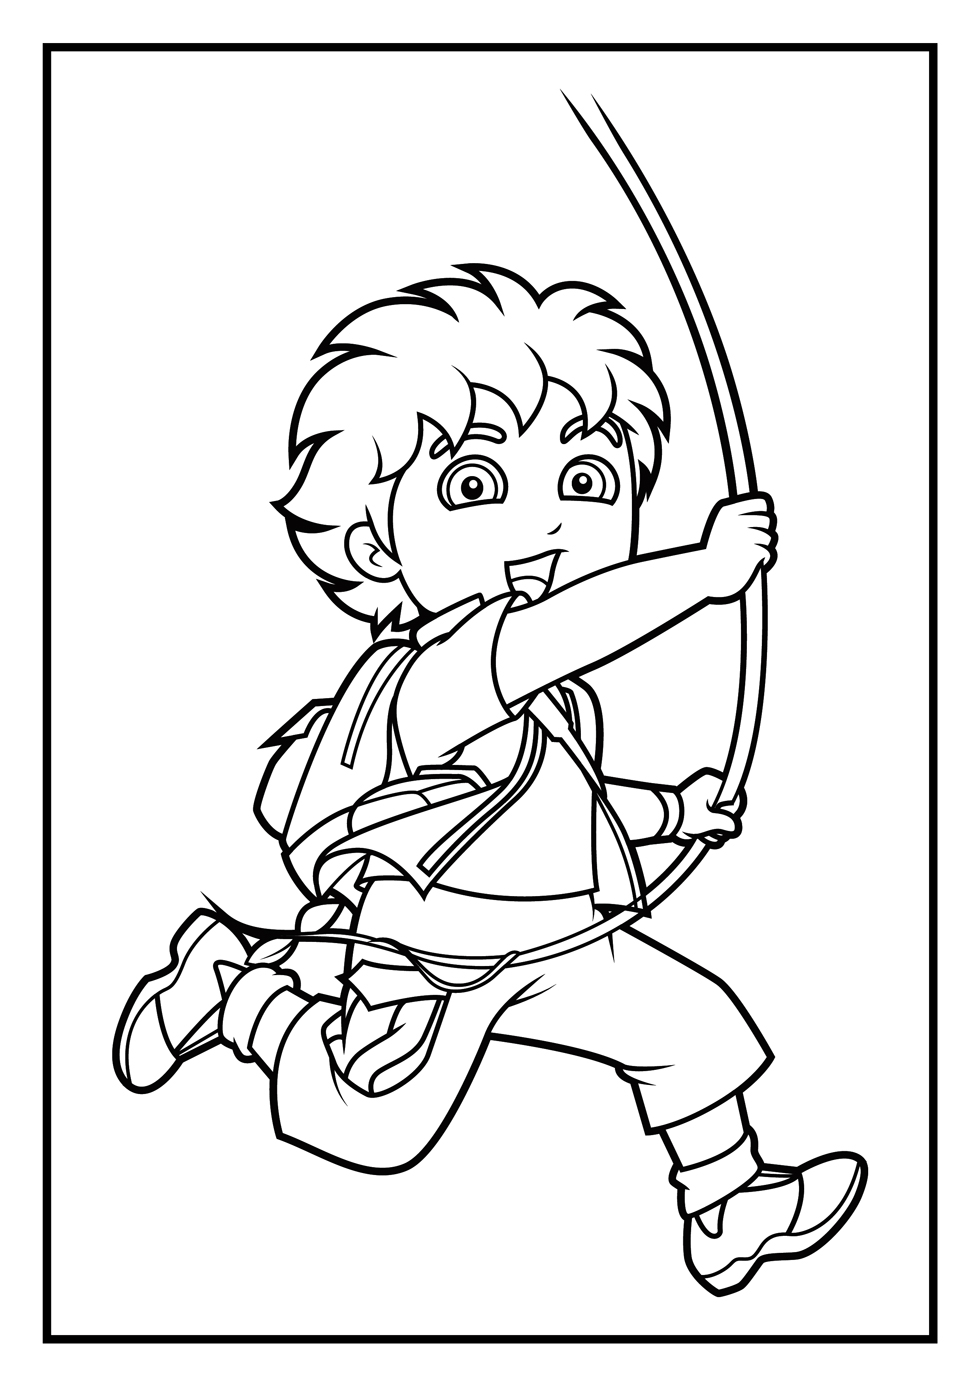 diego coloring pages dora coloring pages diego coloring pages diego pages coloring